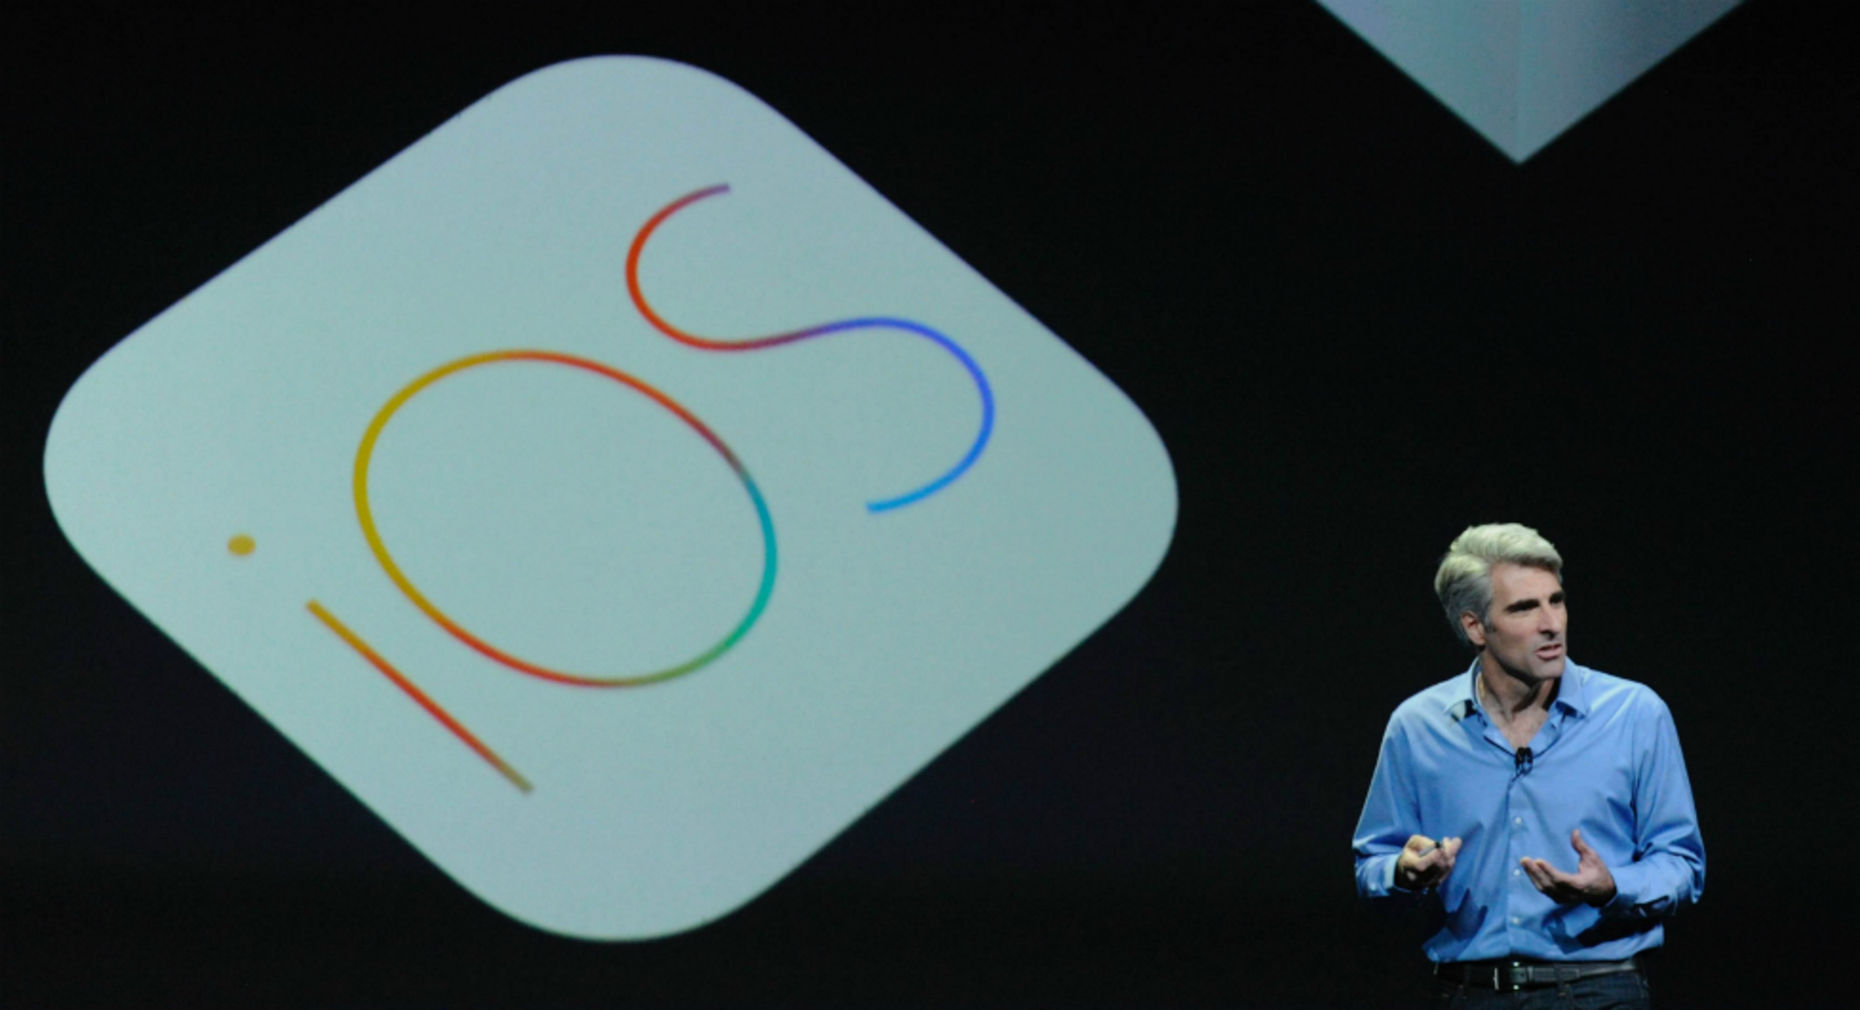 Apple's Craig Federighi introduces iOS 8. Photo by Bloomberg.